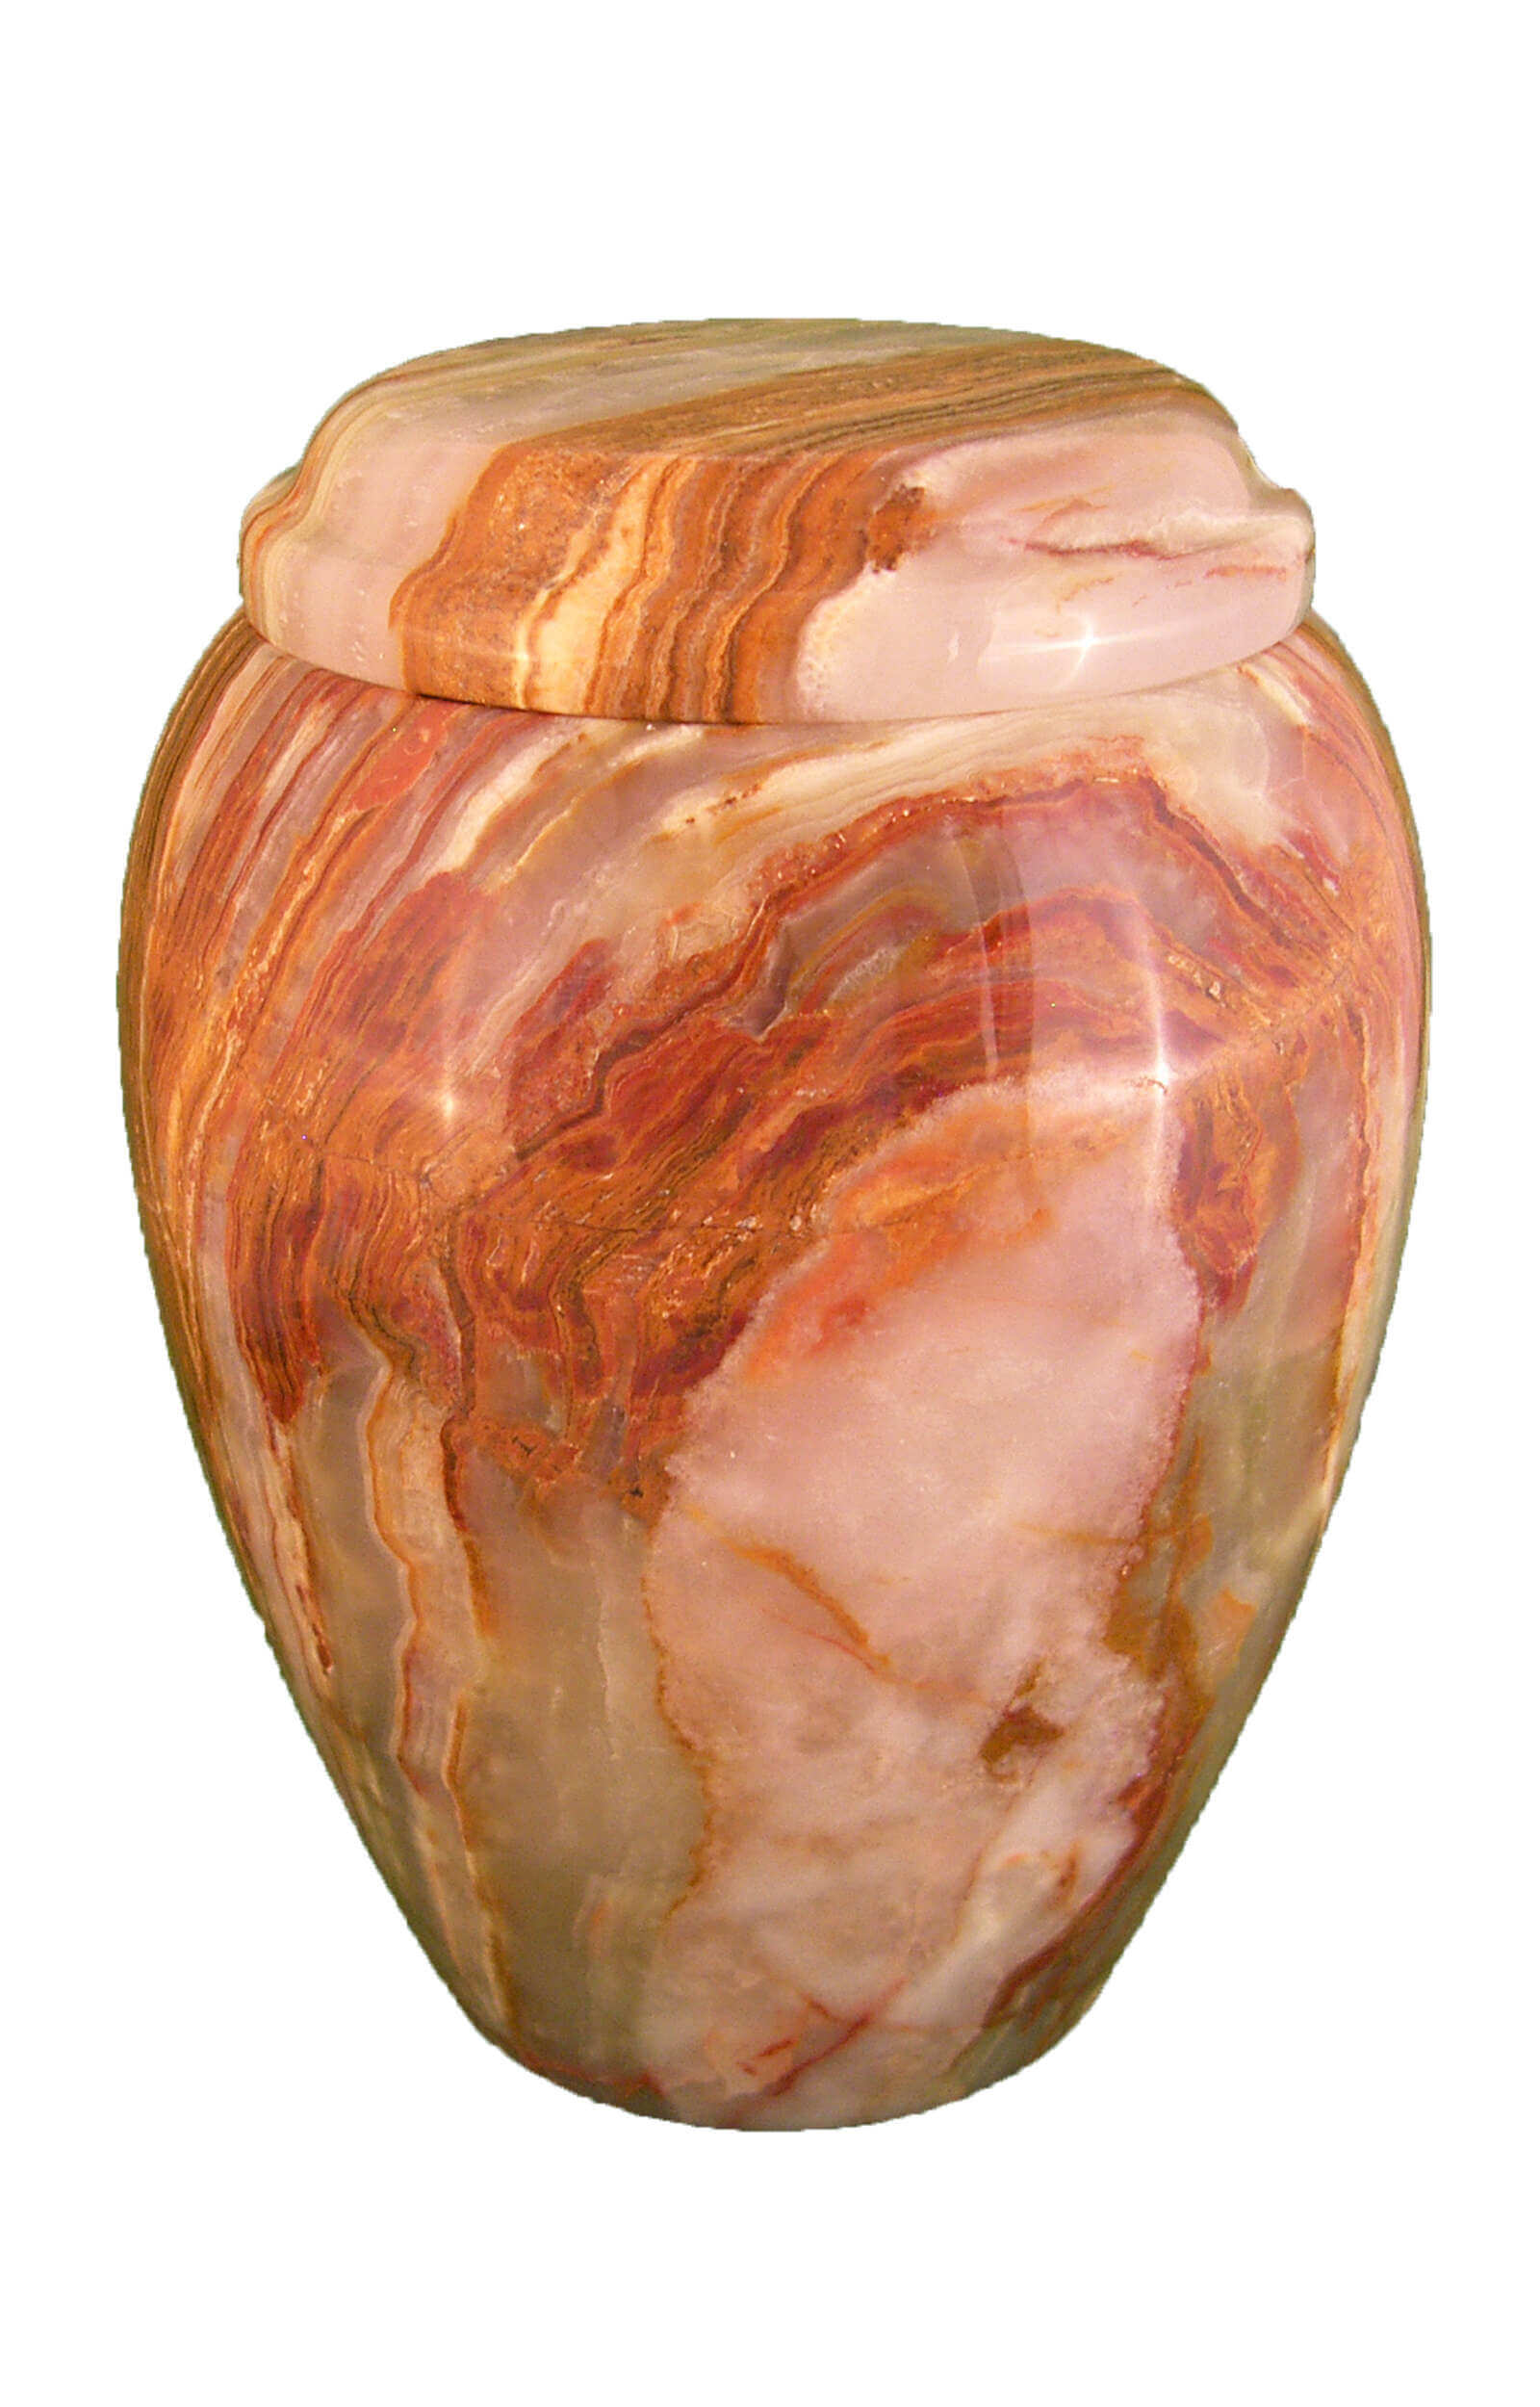 en MA2913 Onyx marbel urn for human ashes multi colour glossy funeral urns on sale